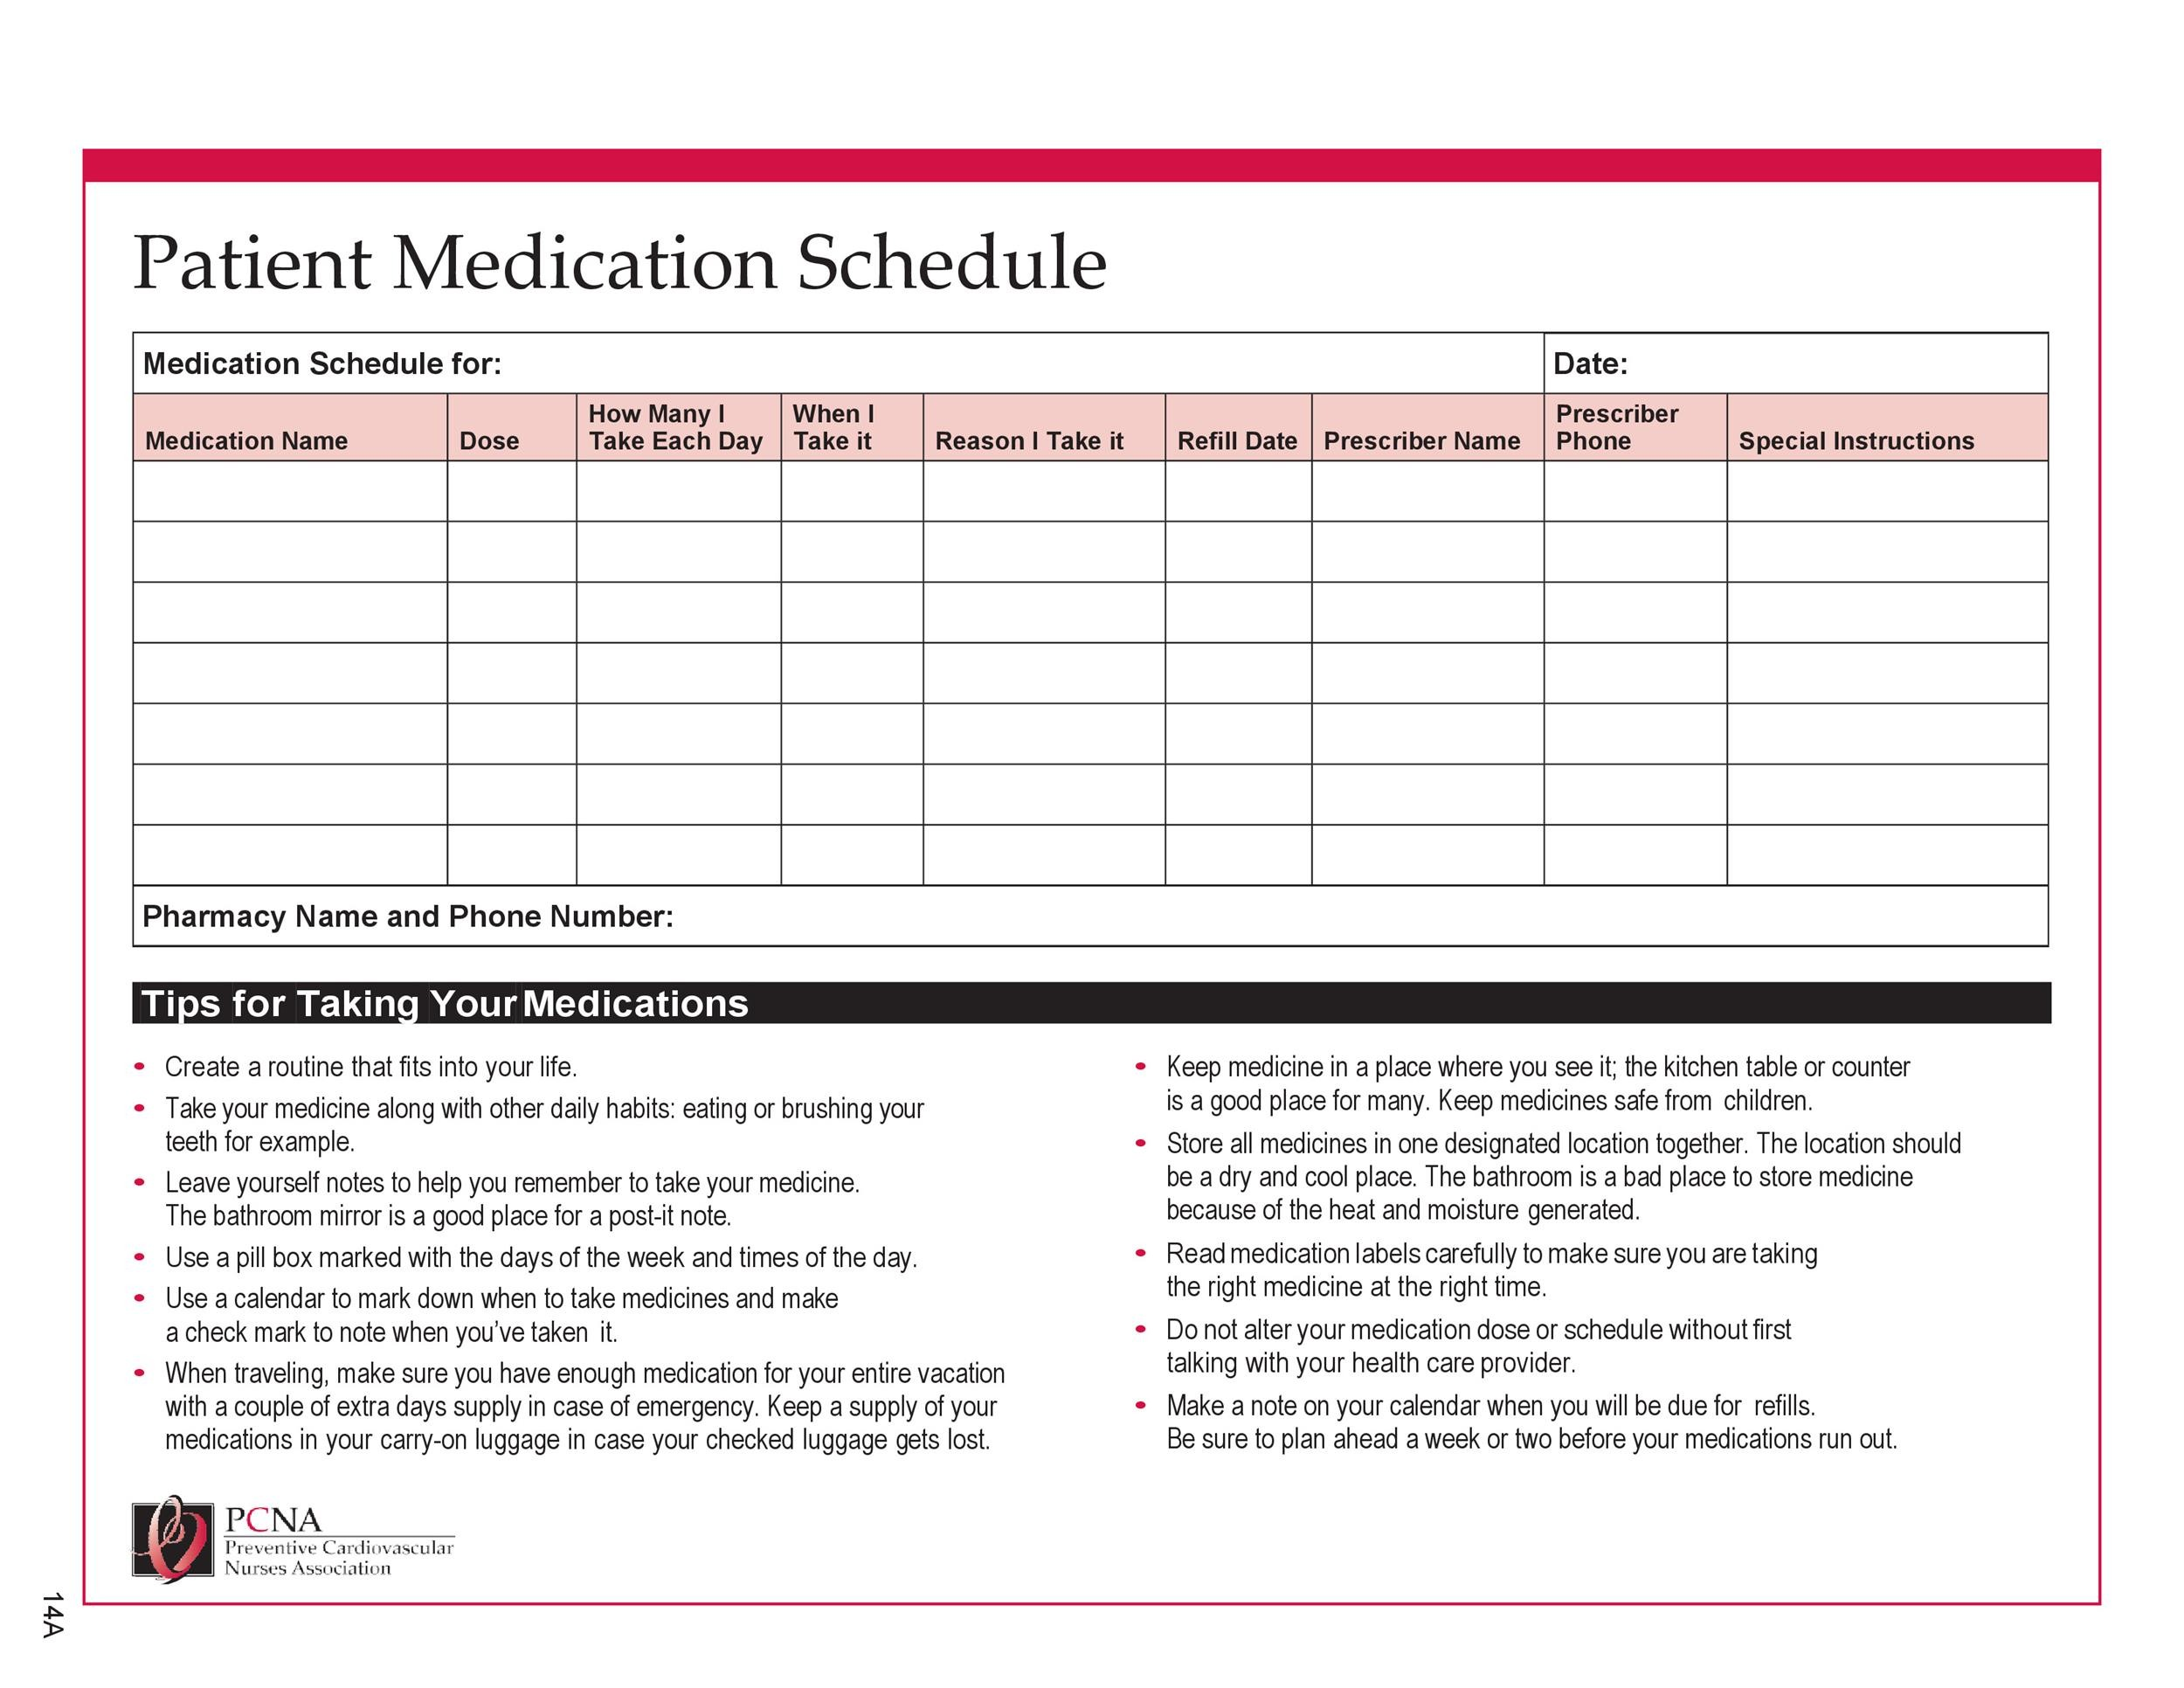 Medication Schedule Templates